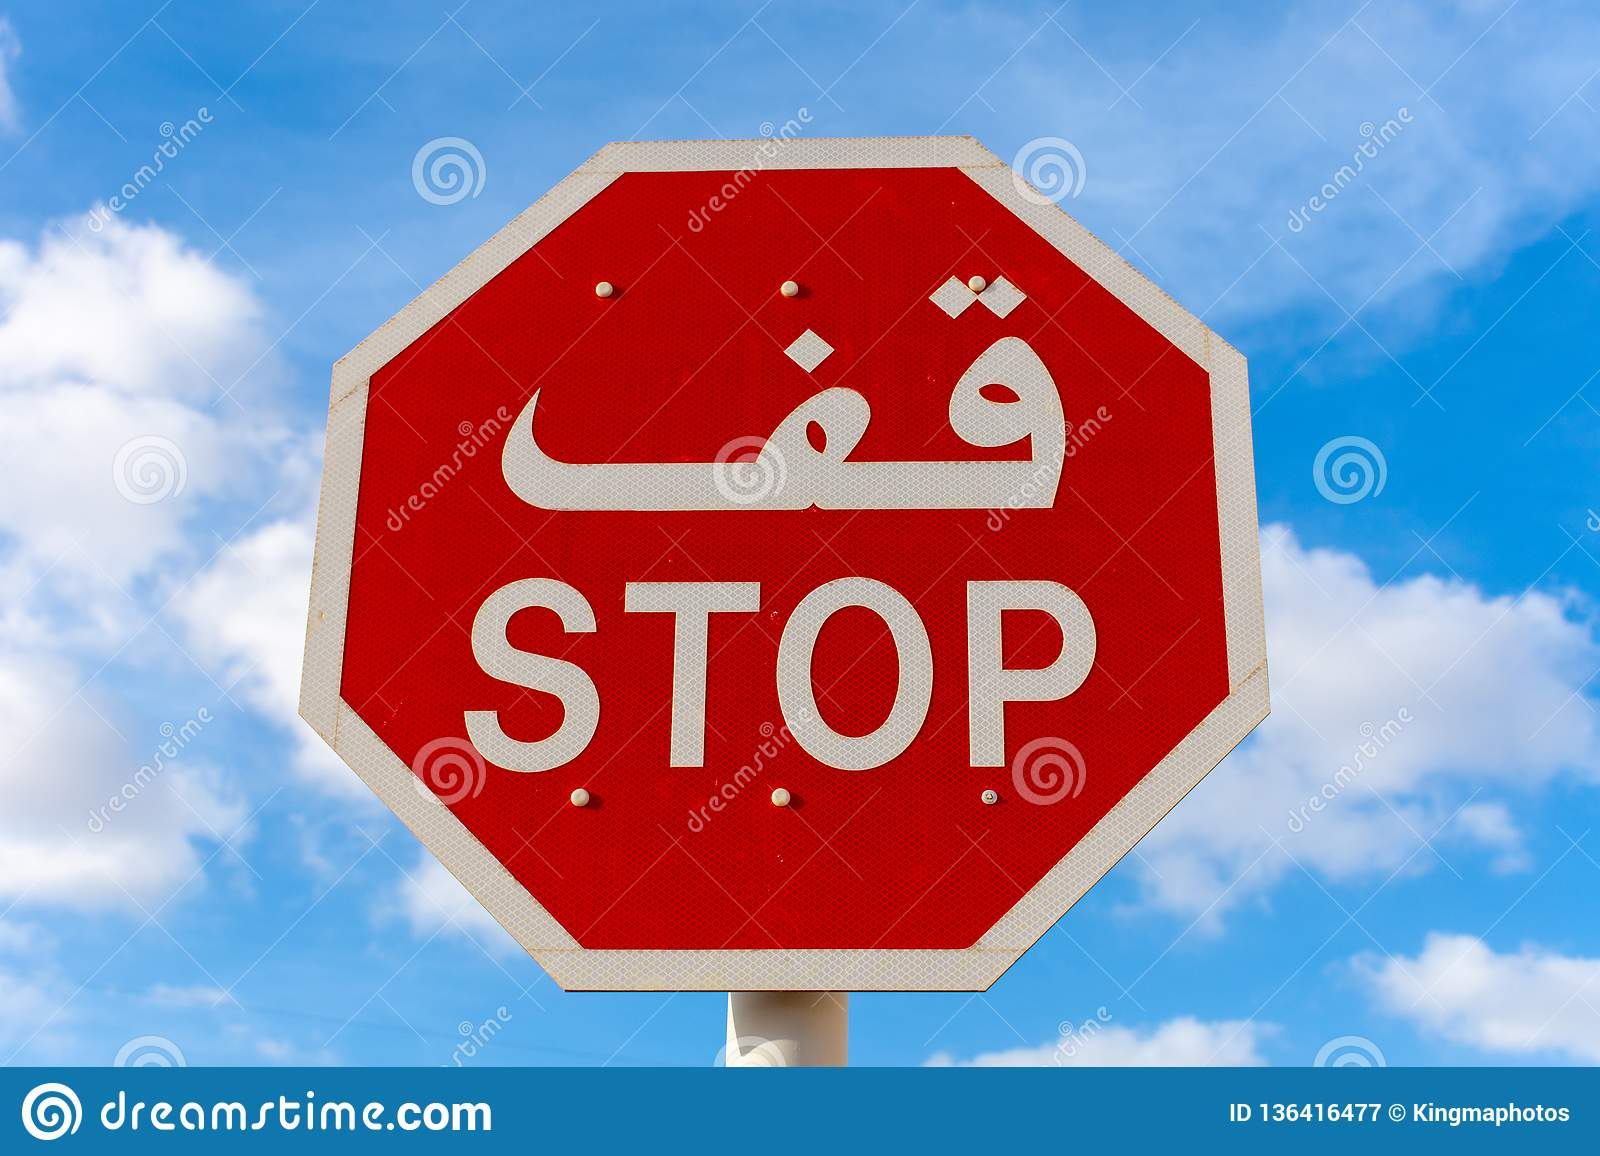 Stop sign in English and Arabic with blue sky and clouds in background.